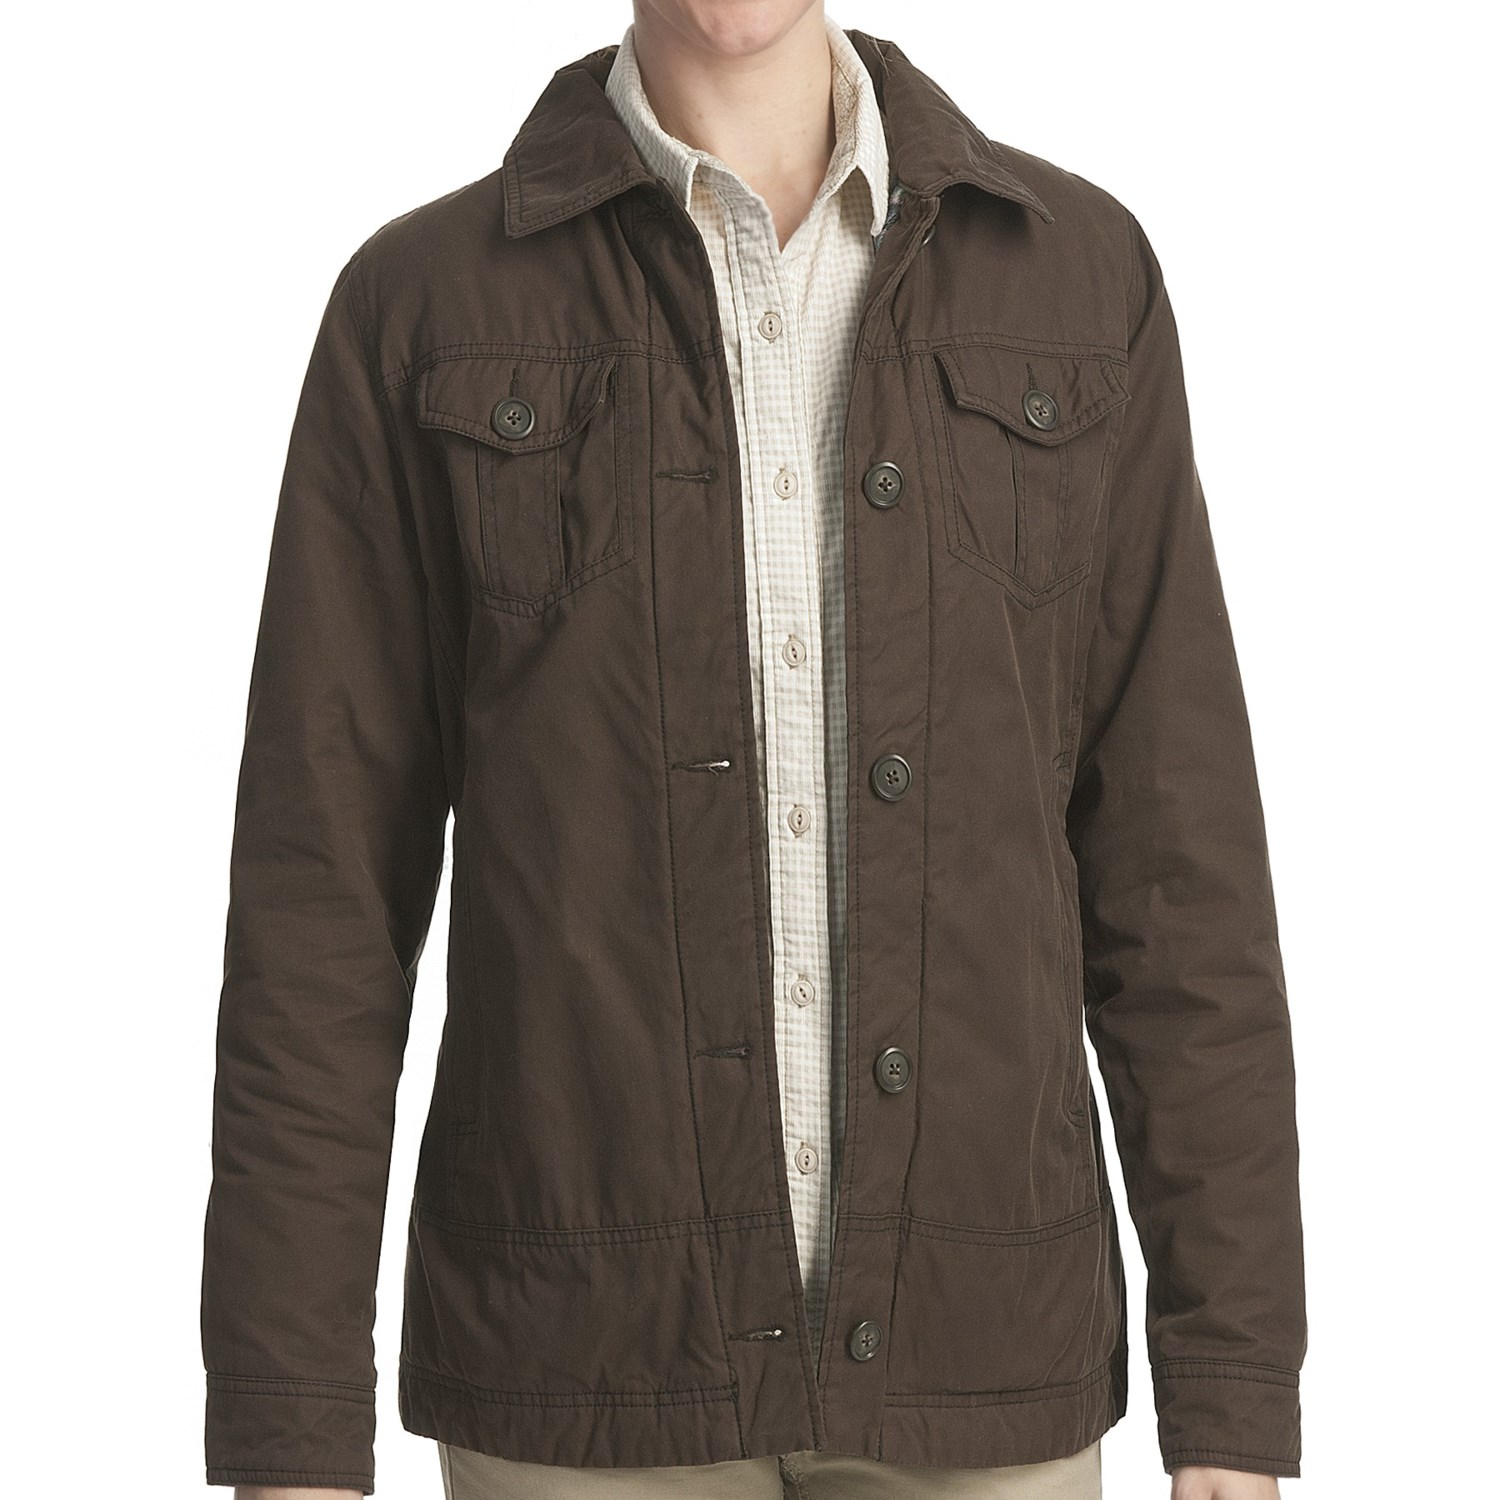 Submit Your Own Image · Woolrich Blacktail Jacket